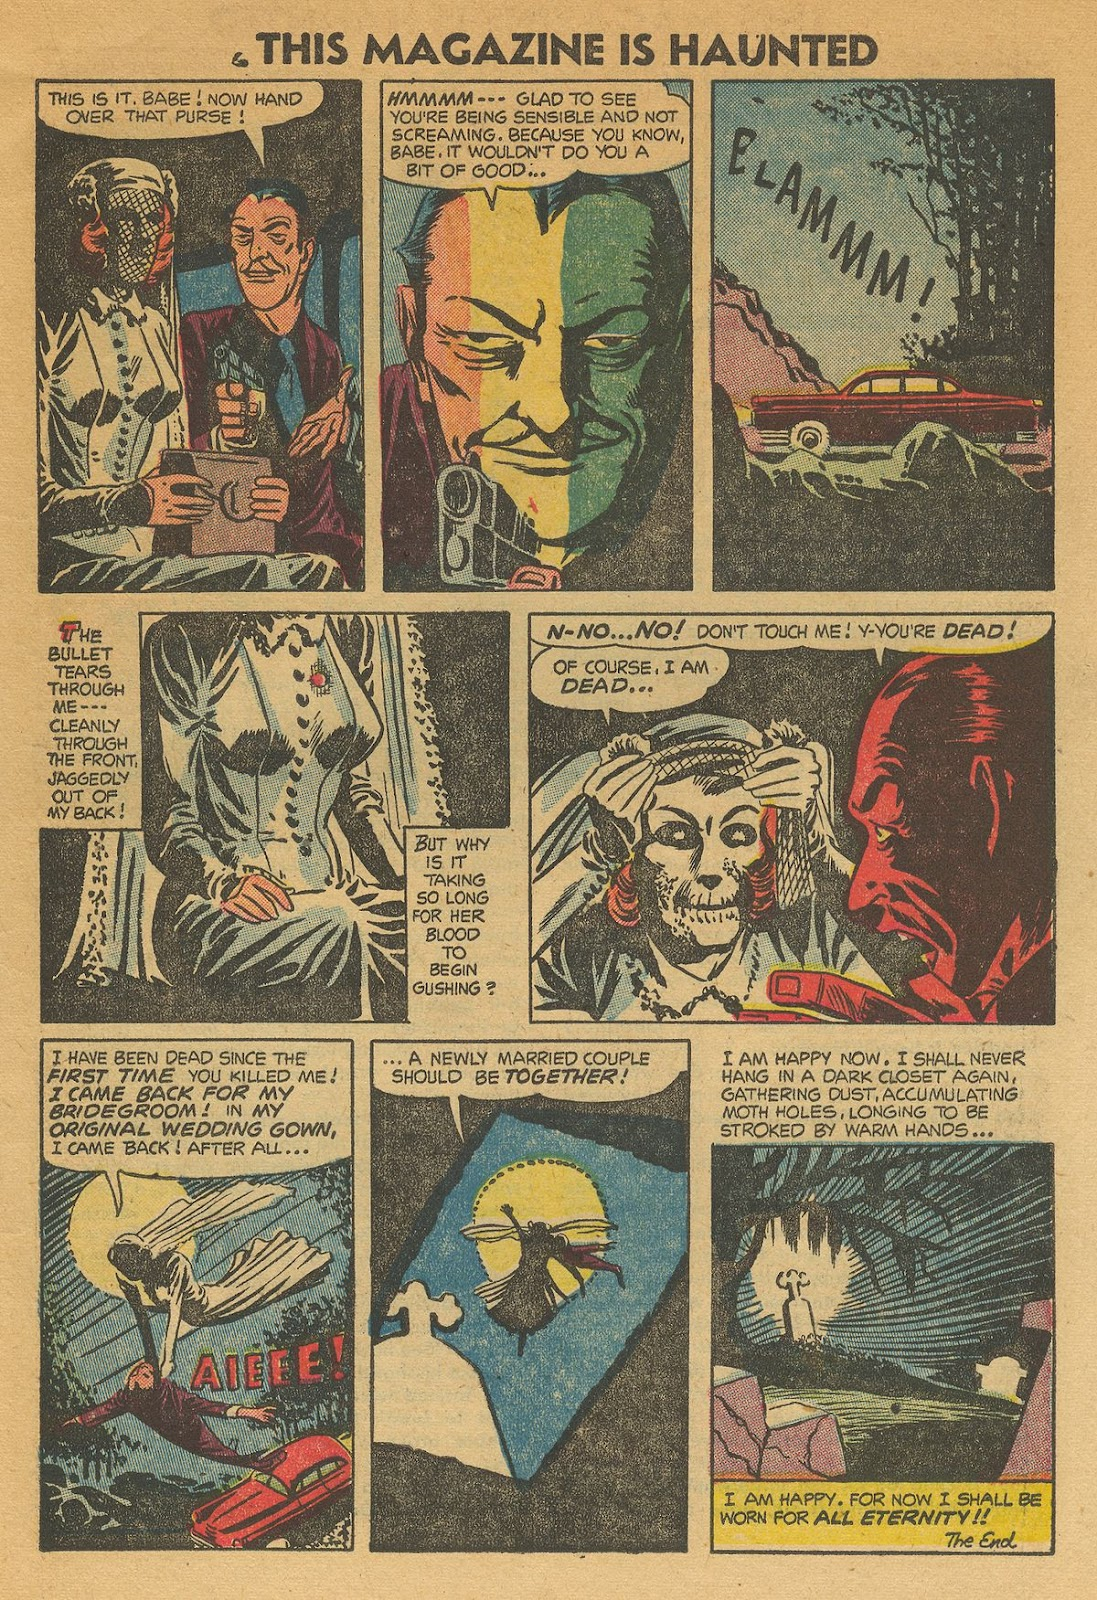 Read online This Magazine Is Haunted comic -  Issue #18 - 15